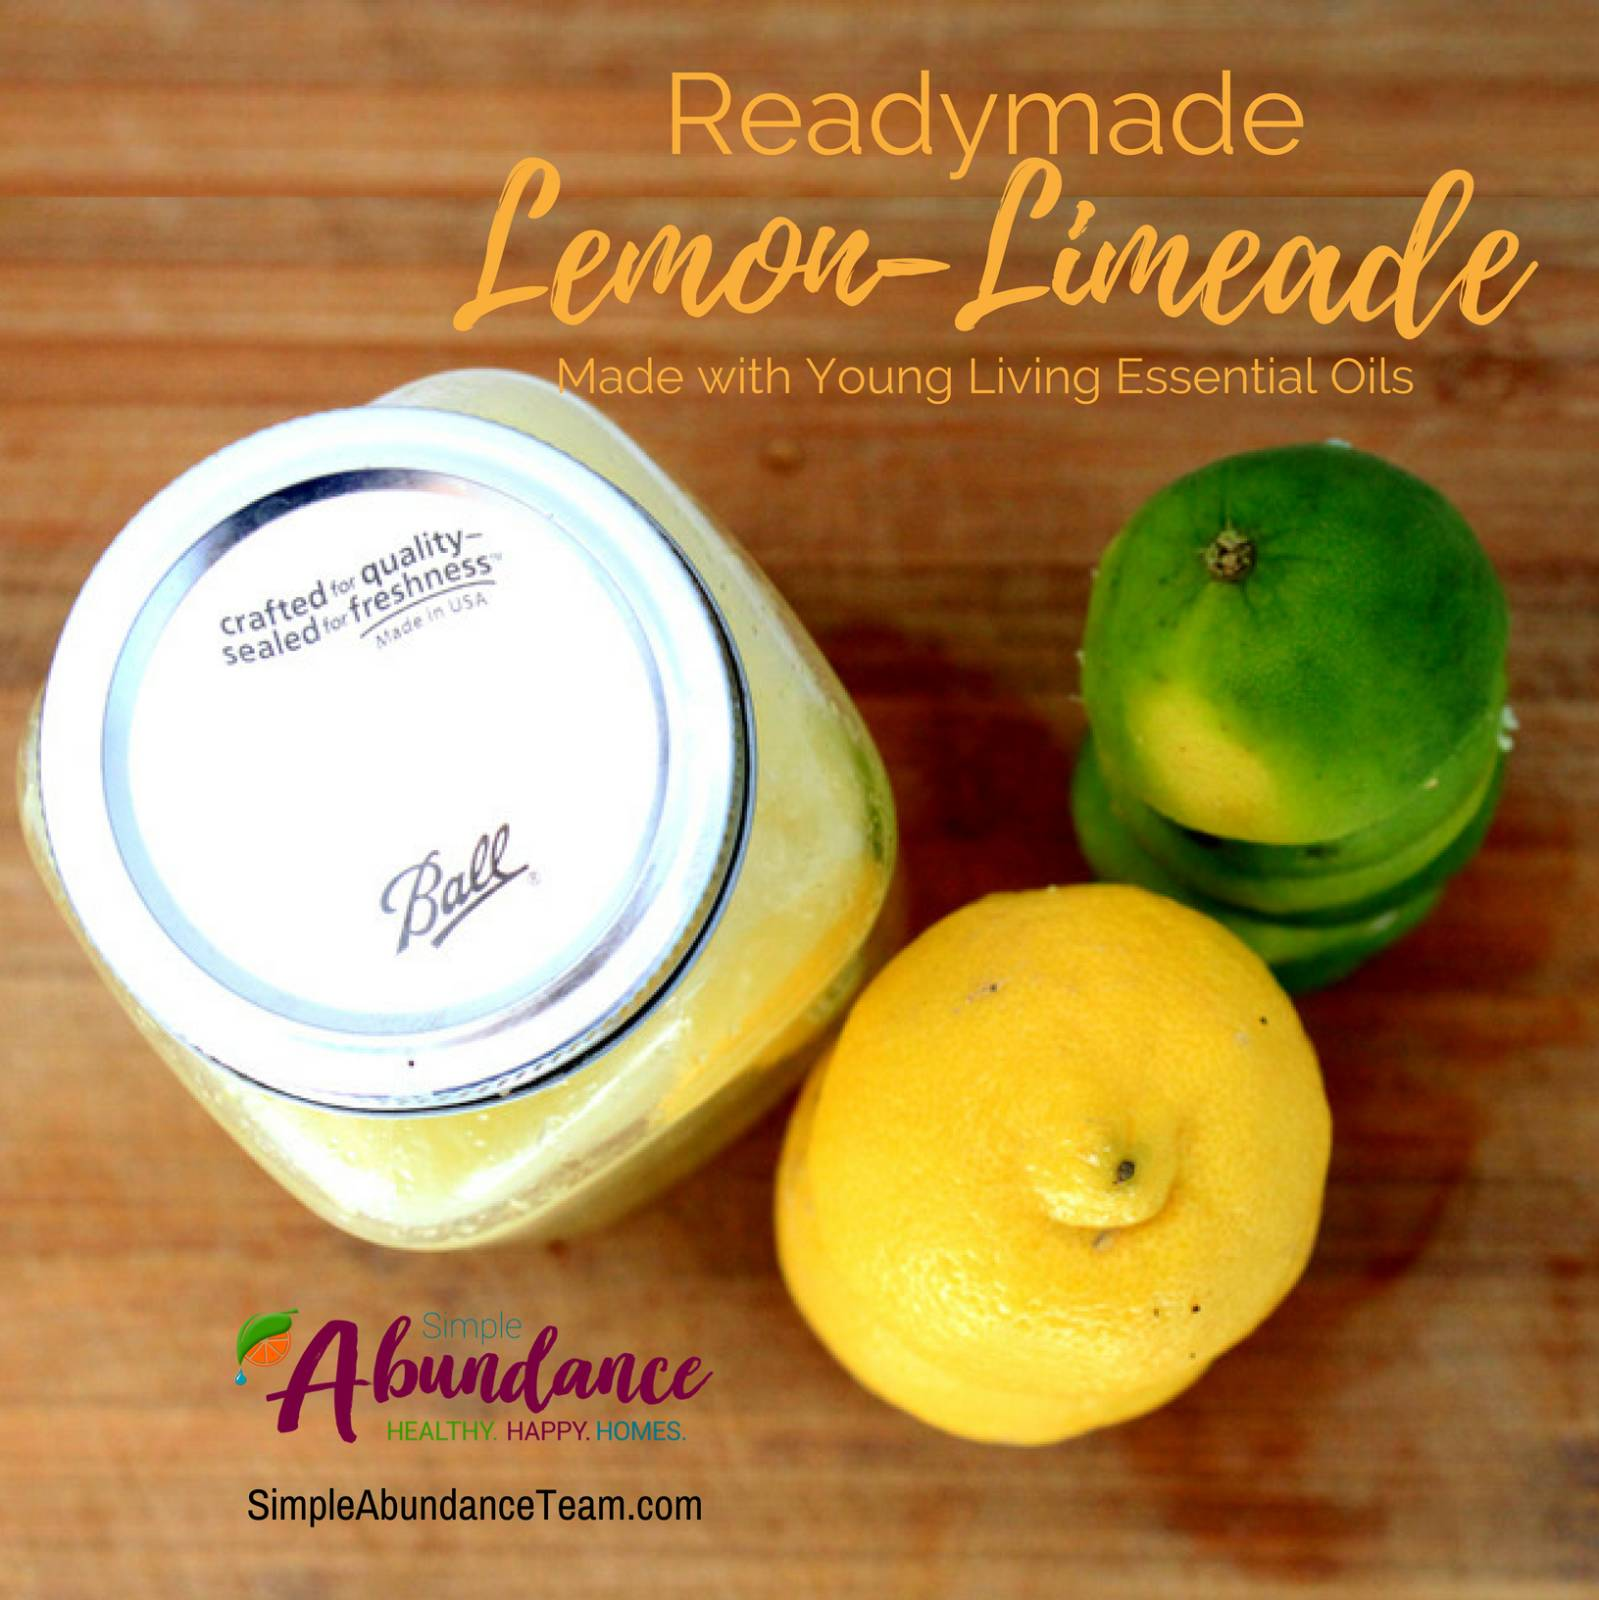 Quick and Easy Lemon-Limeade with Essential Oils